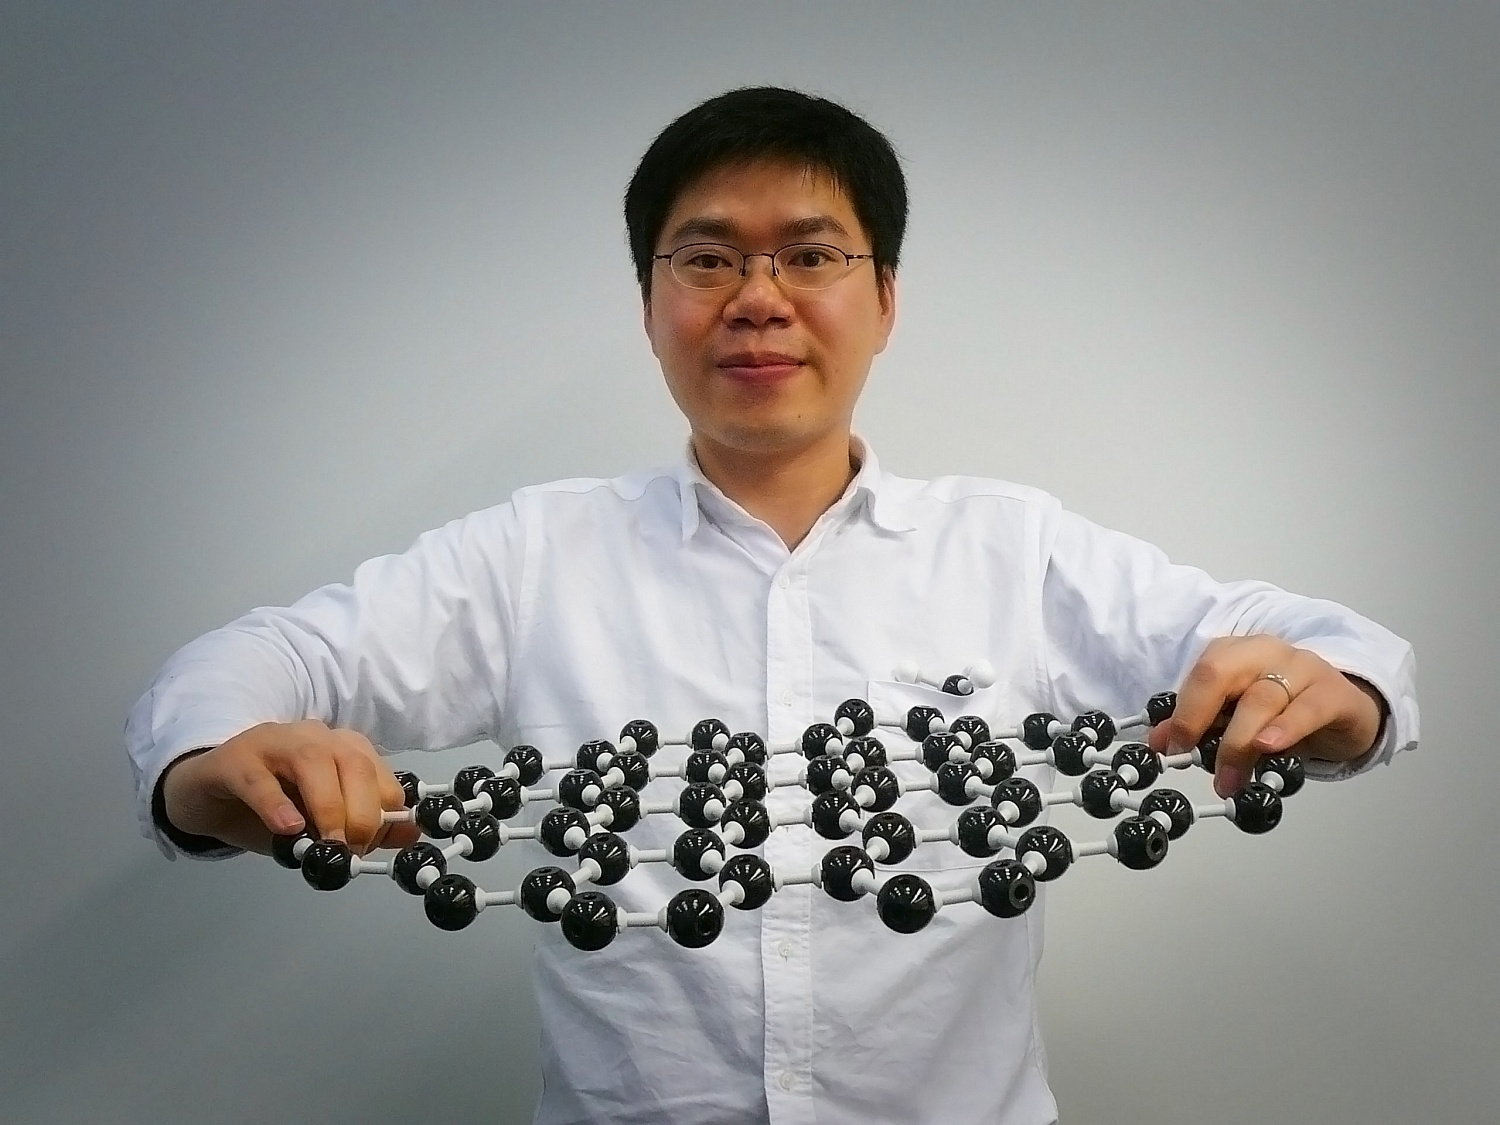 graphene production cost reduced by Delft